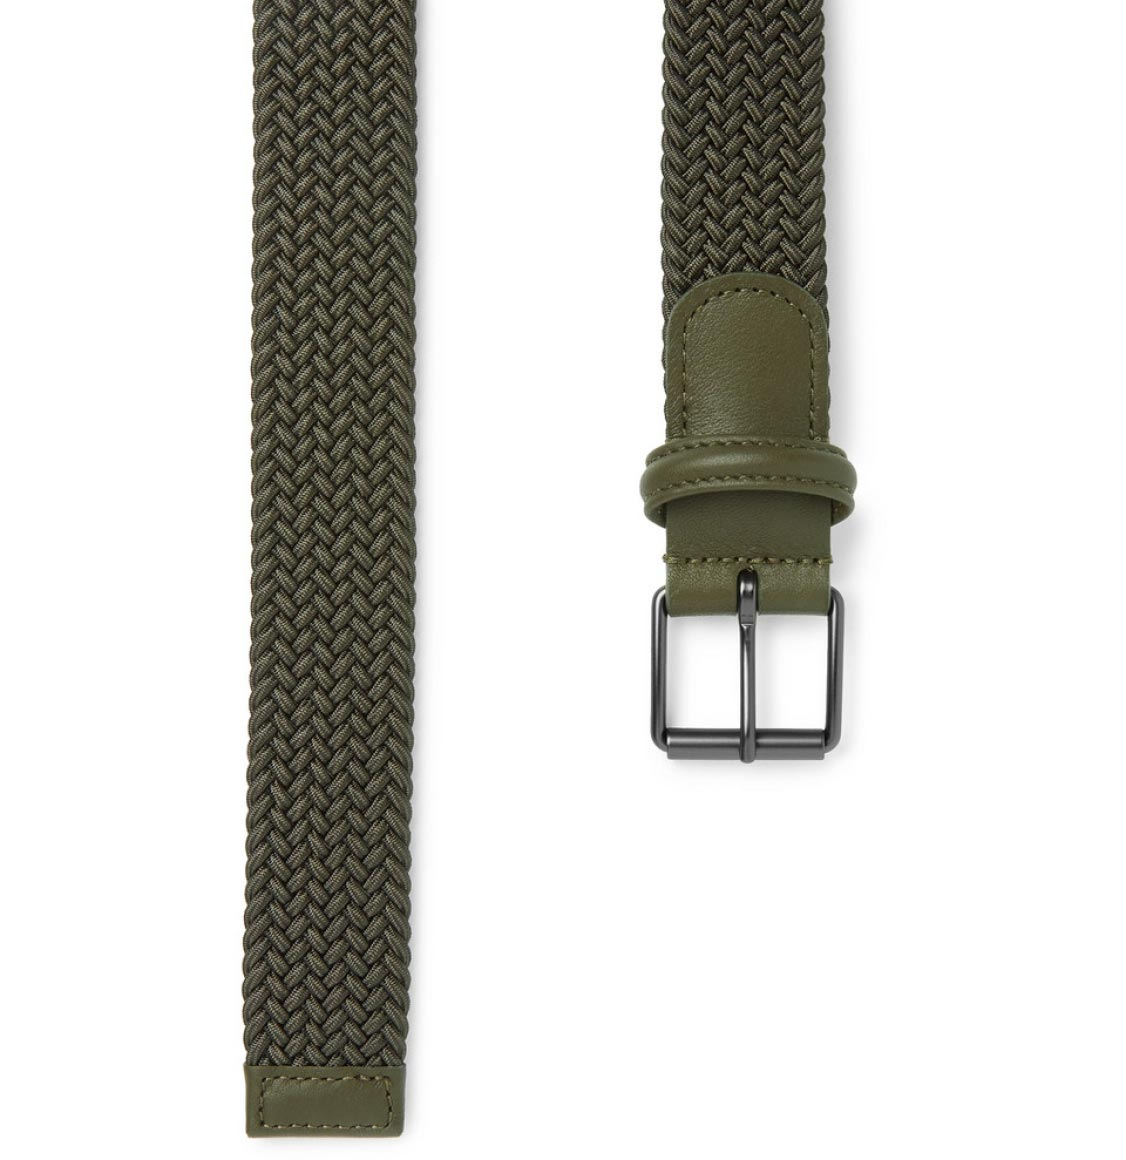 Anderson's Leather-Trimmed Woven Belt Green